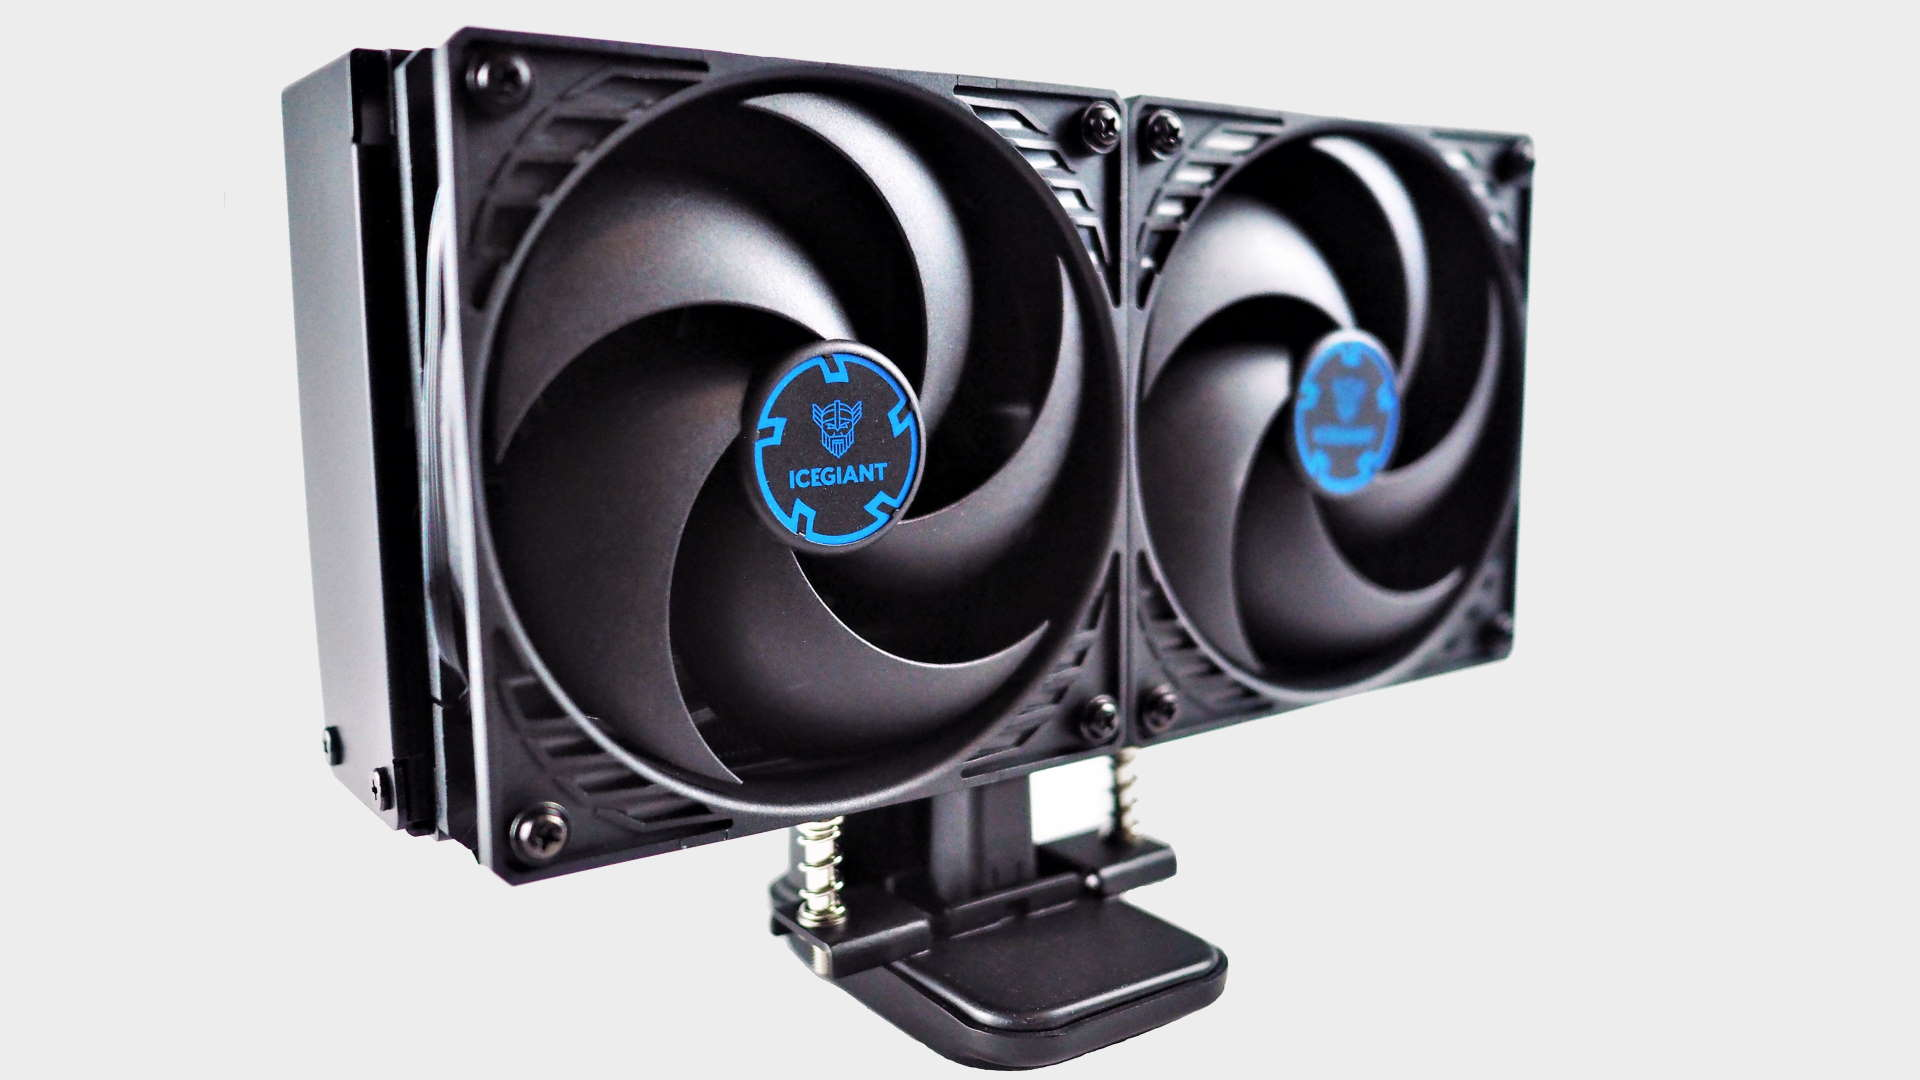 This monster CPU cooler is the weight of a whole gaming laptop